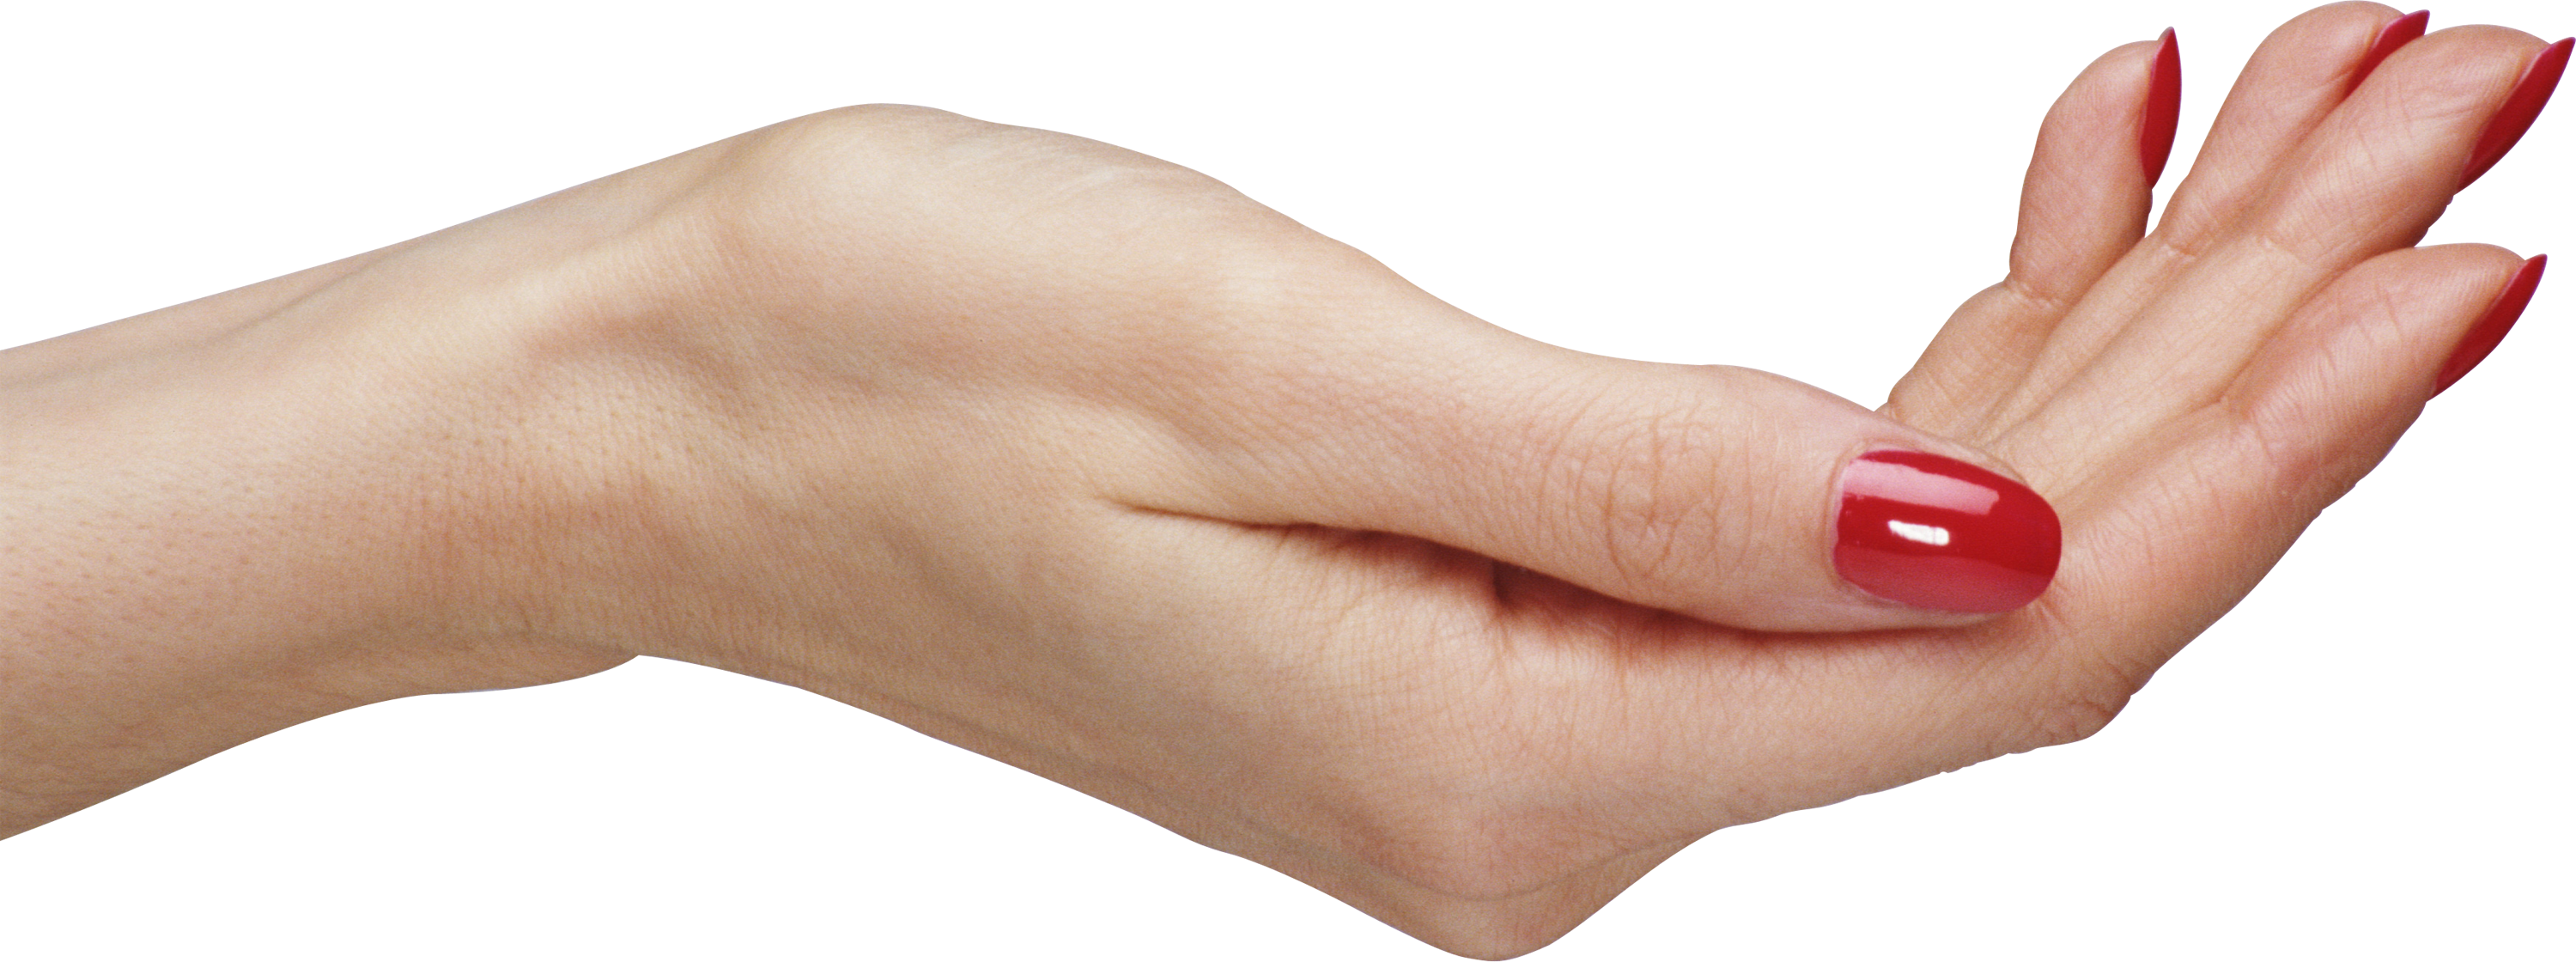 Hands Png - Palm hands PNG, hand image free